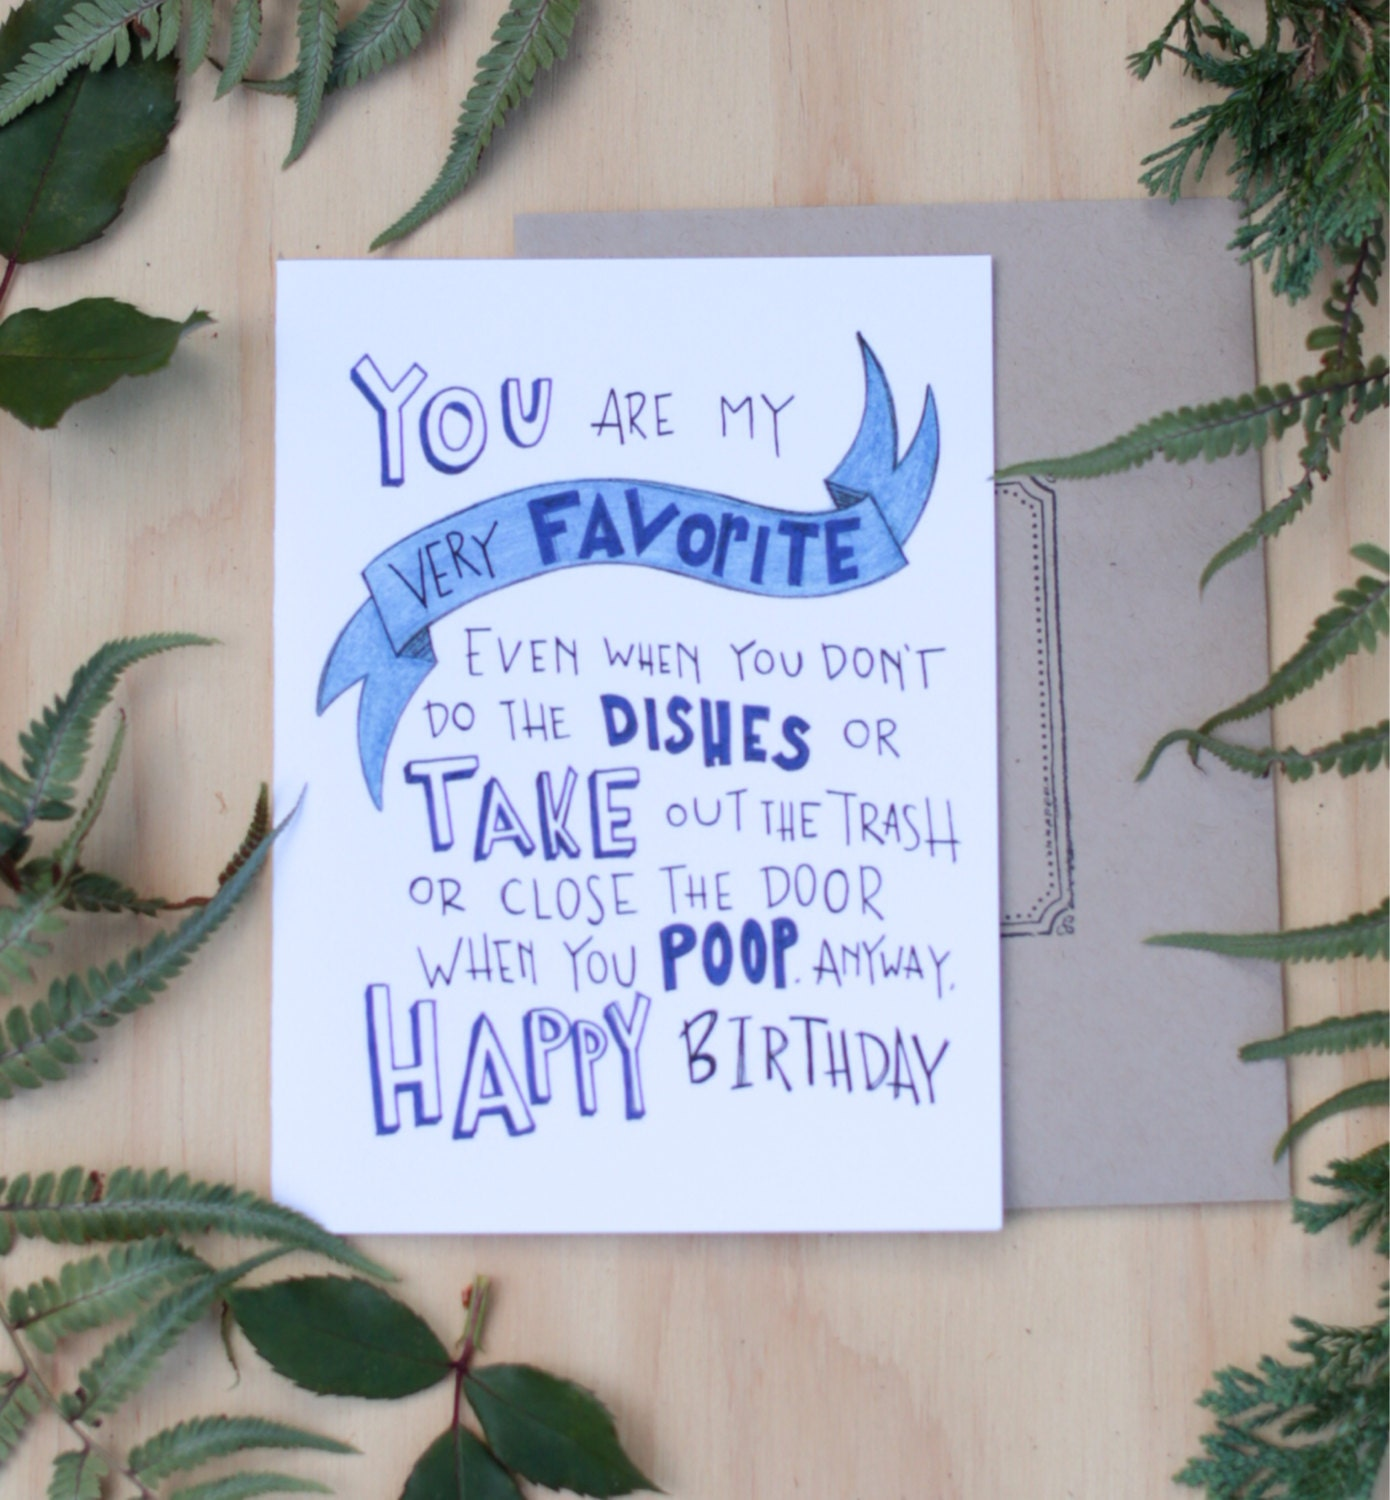 Funny Birthday Card For Boyfriend Husband You Are My Very Favorite